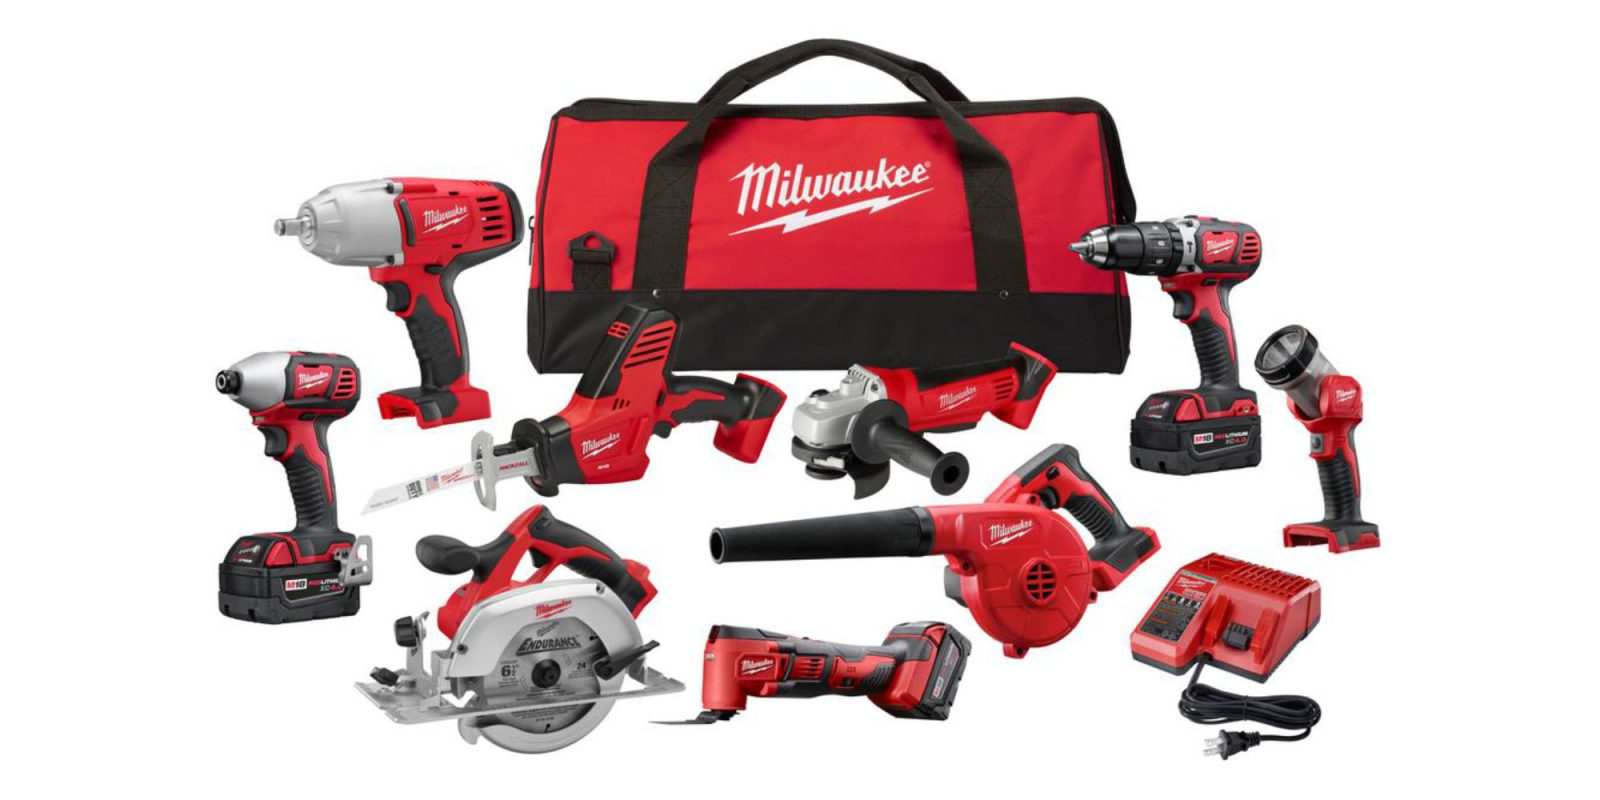 Save up to 50% off Milwaukee gear at Home Depot: 9-Tool Kit